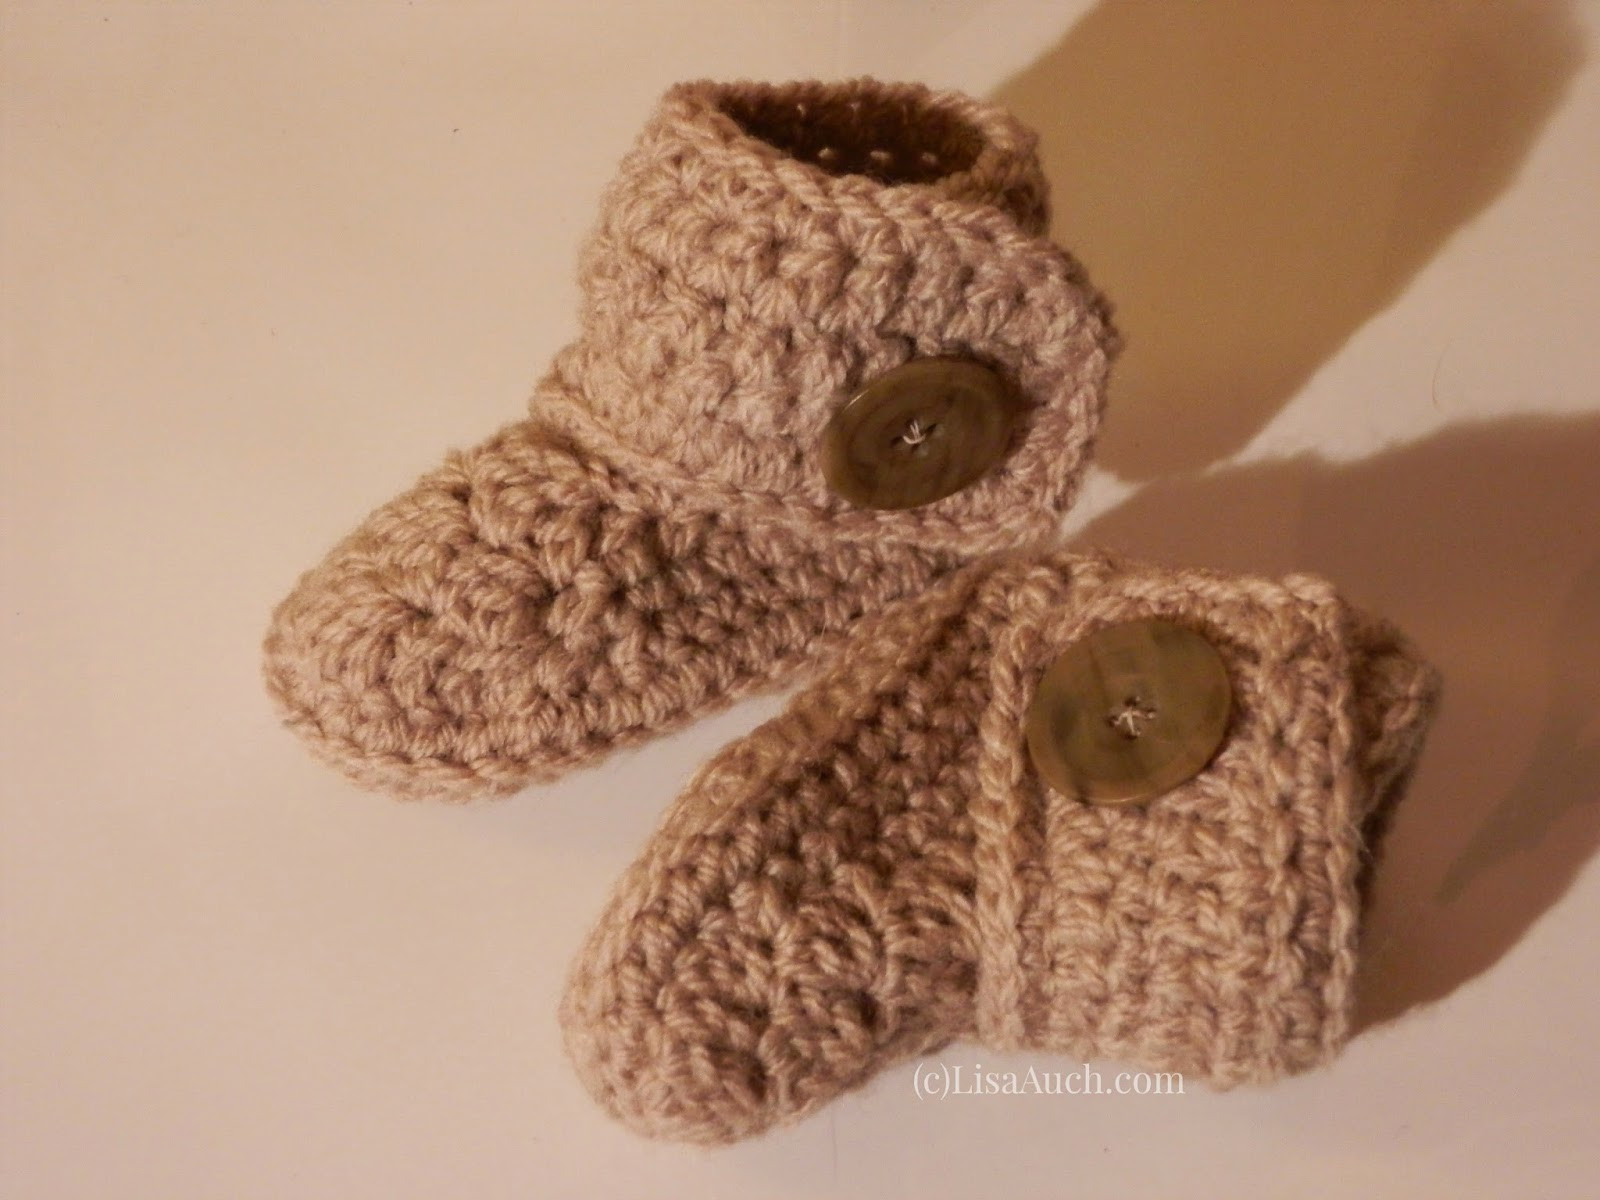 Free Crochet Patterns for Baby Booties Beautiful Free Crochet Patterns and Designs by Lisaauch Free Of Luxury 40 Pictures Free Crochet Patterns for Baby Booties